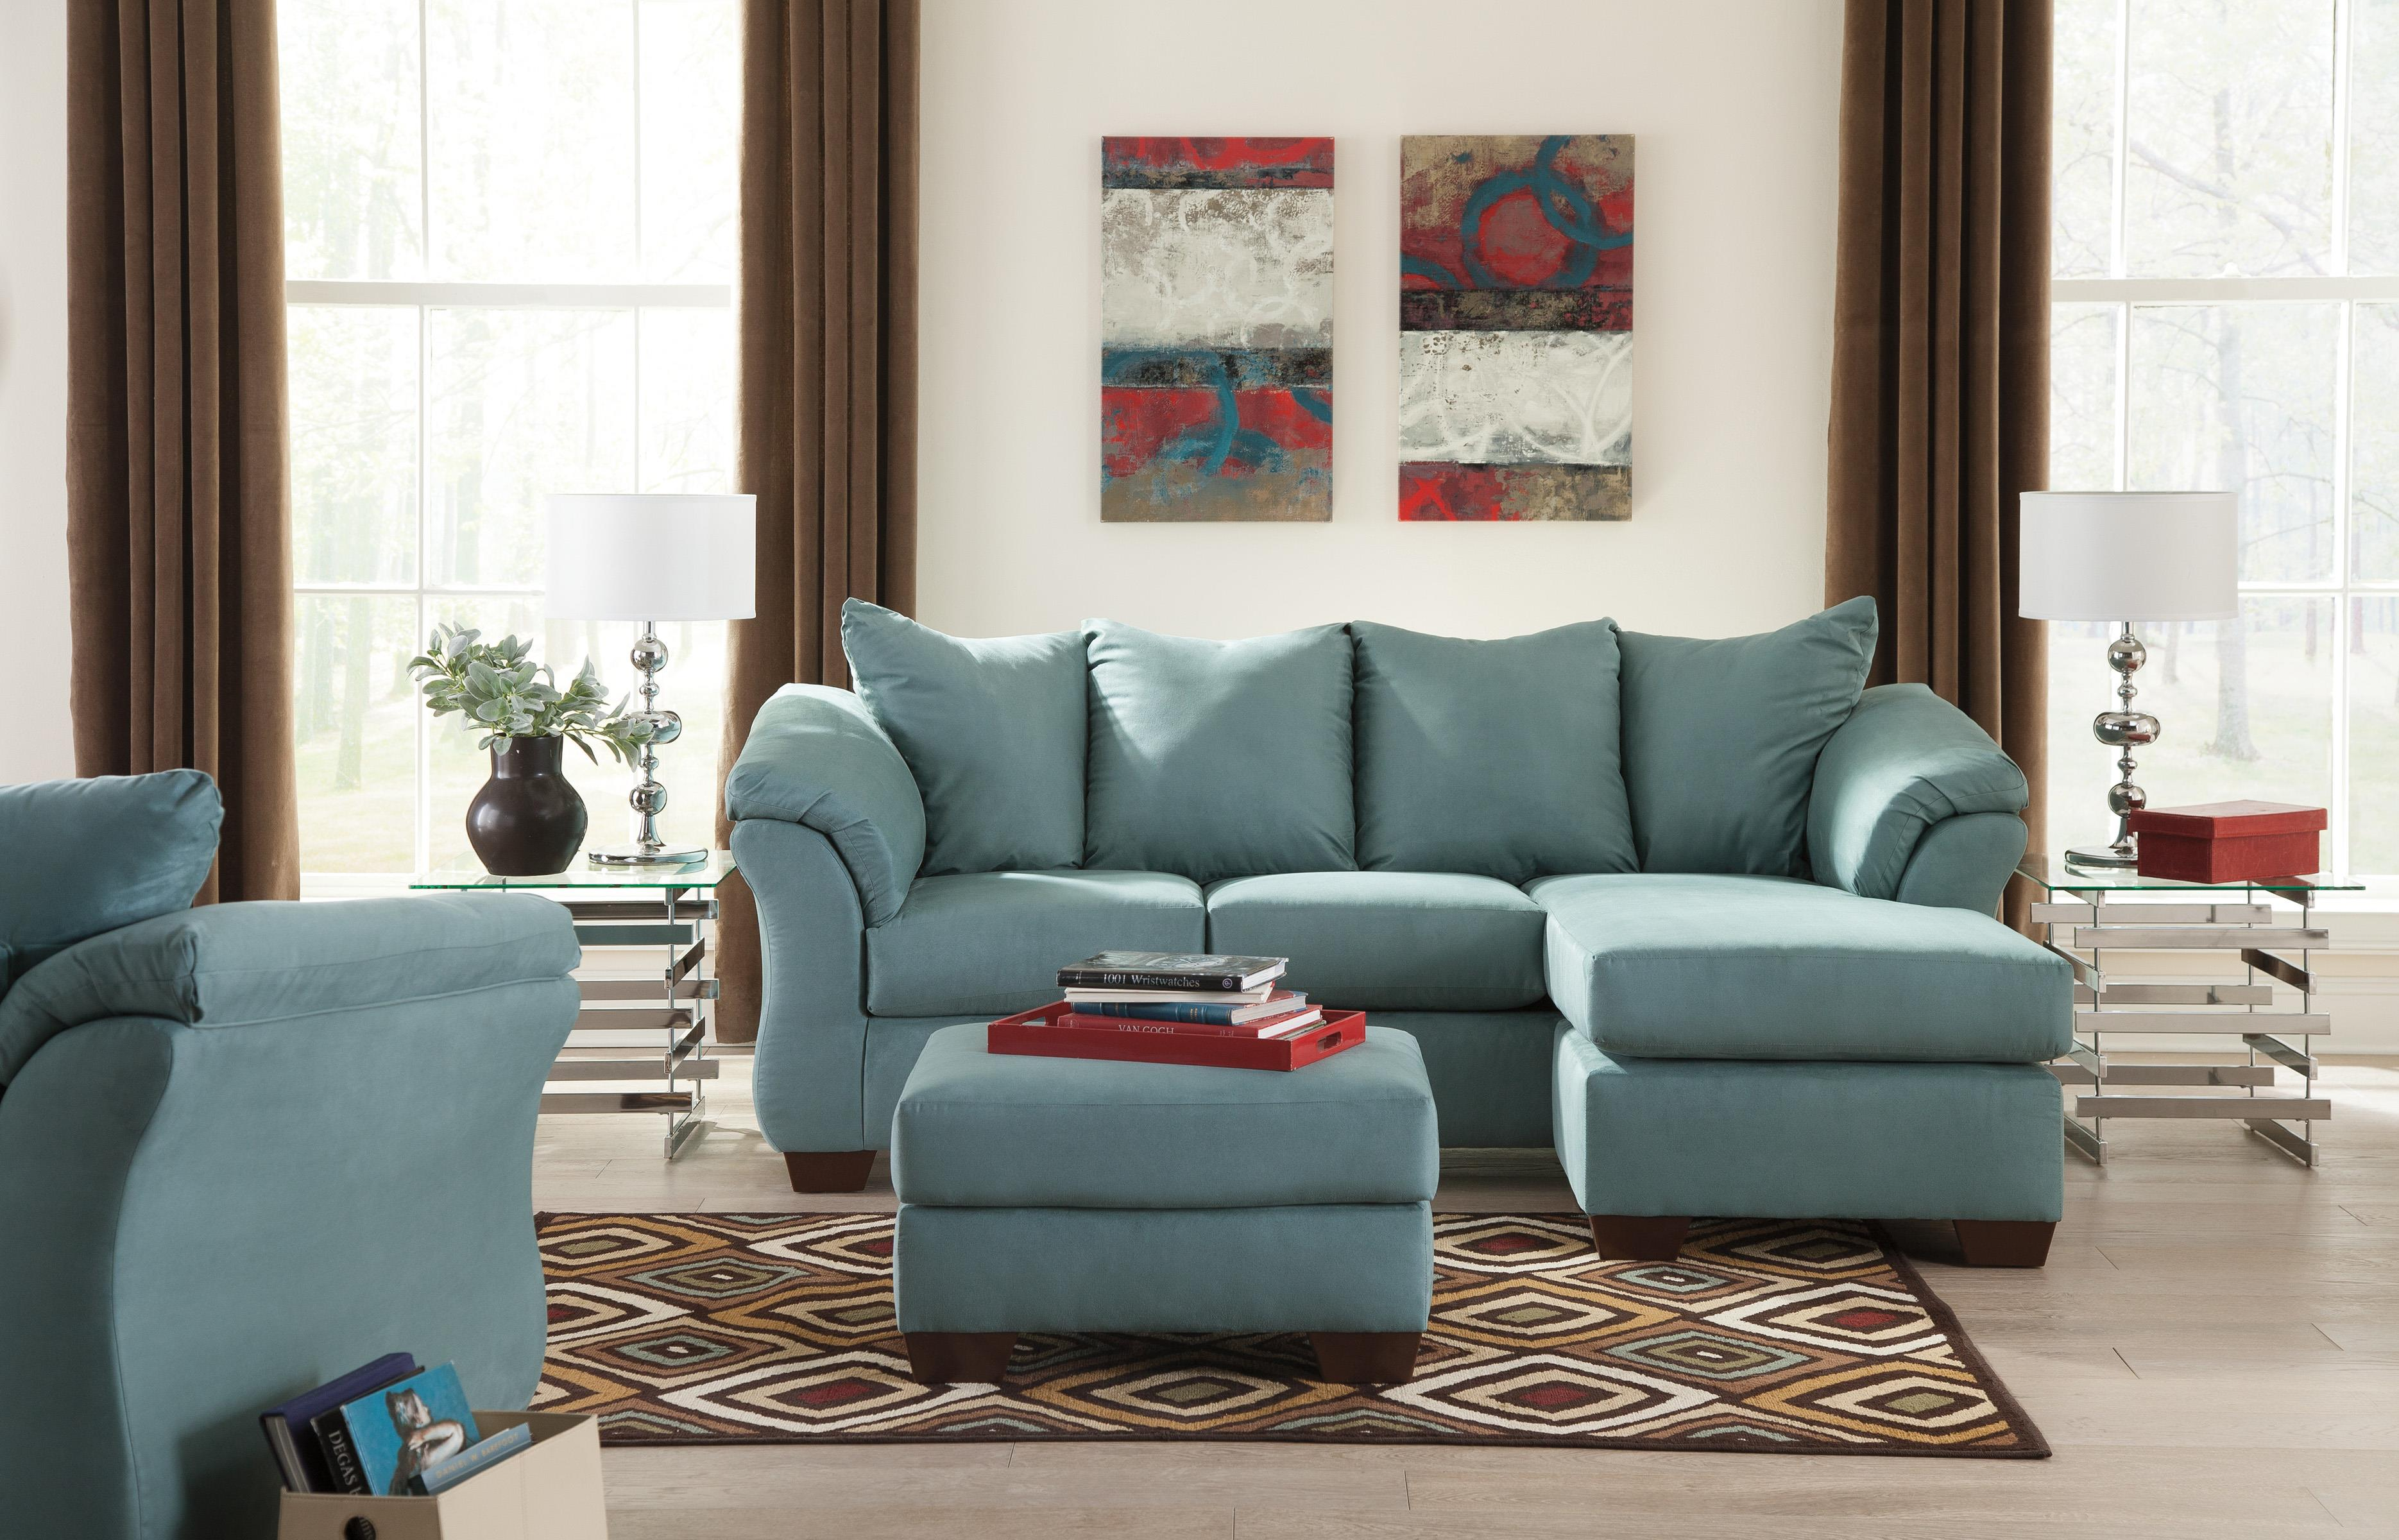 Signature Design By Ashley Darcy Sky 7500618 Contemporary Sofa Chaise With Flared Back Pillows